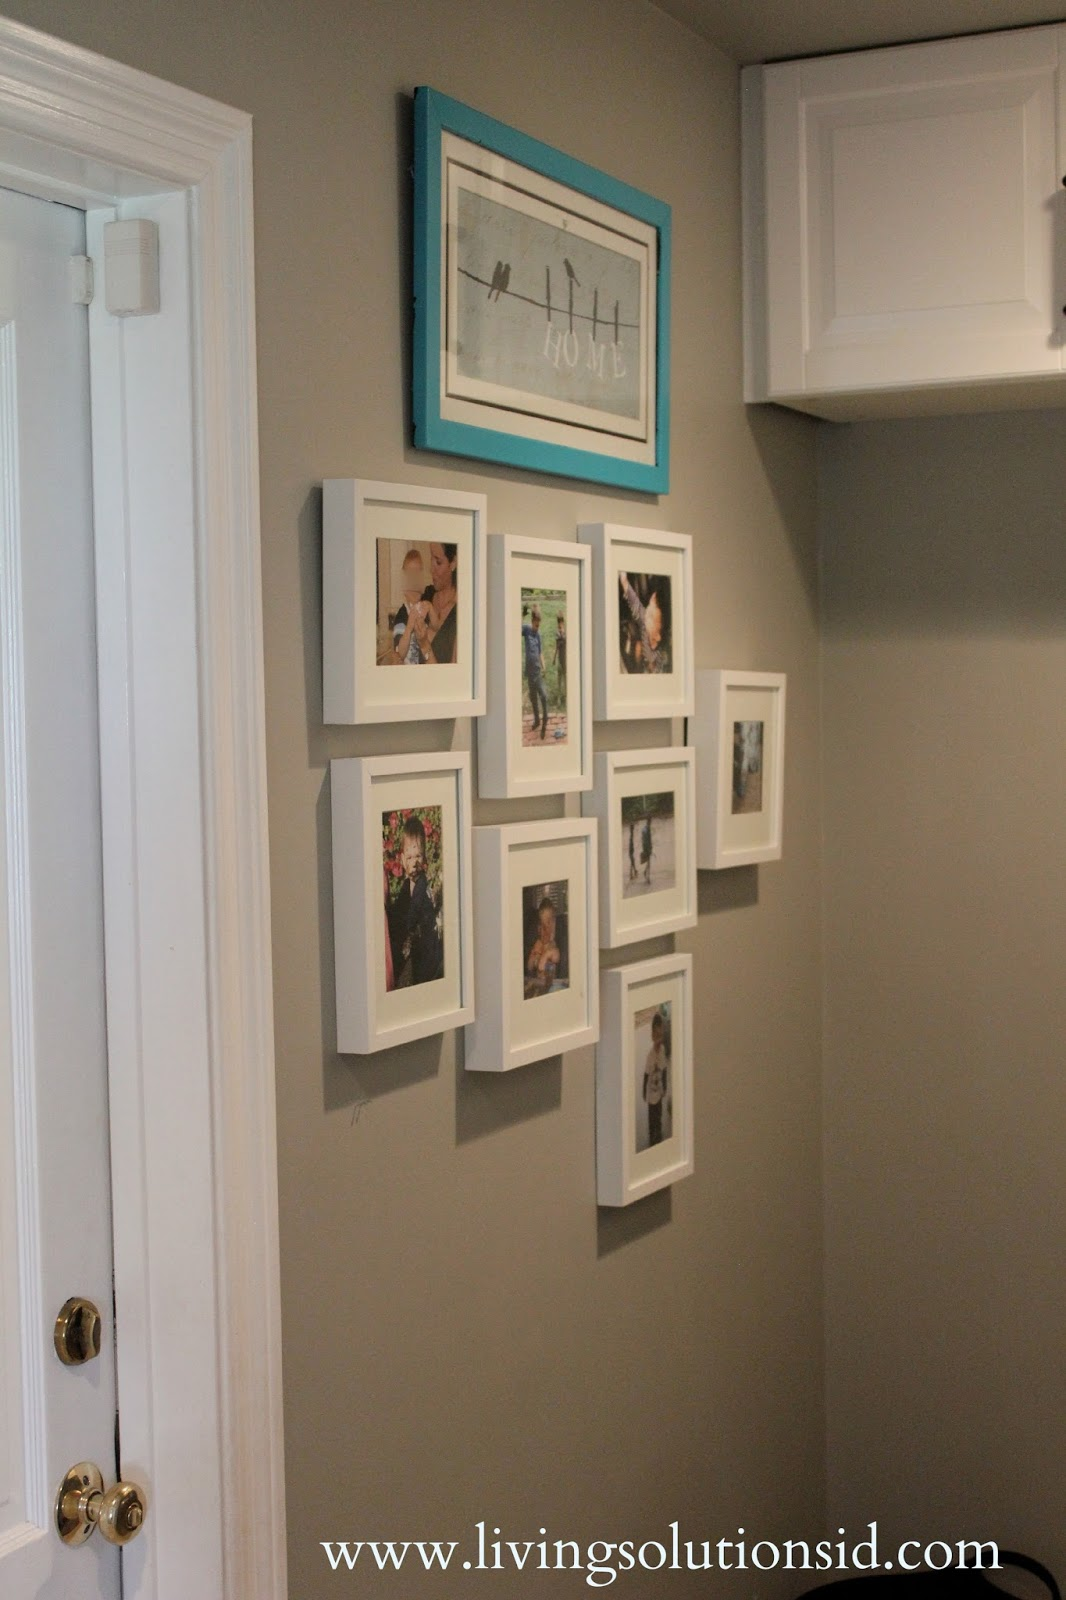 Laundry Room Frames Magnificent Laundry Room Gallery Wall  Living Solutions Blog Decorating Design